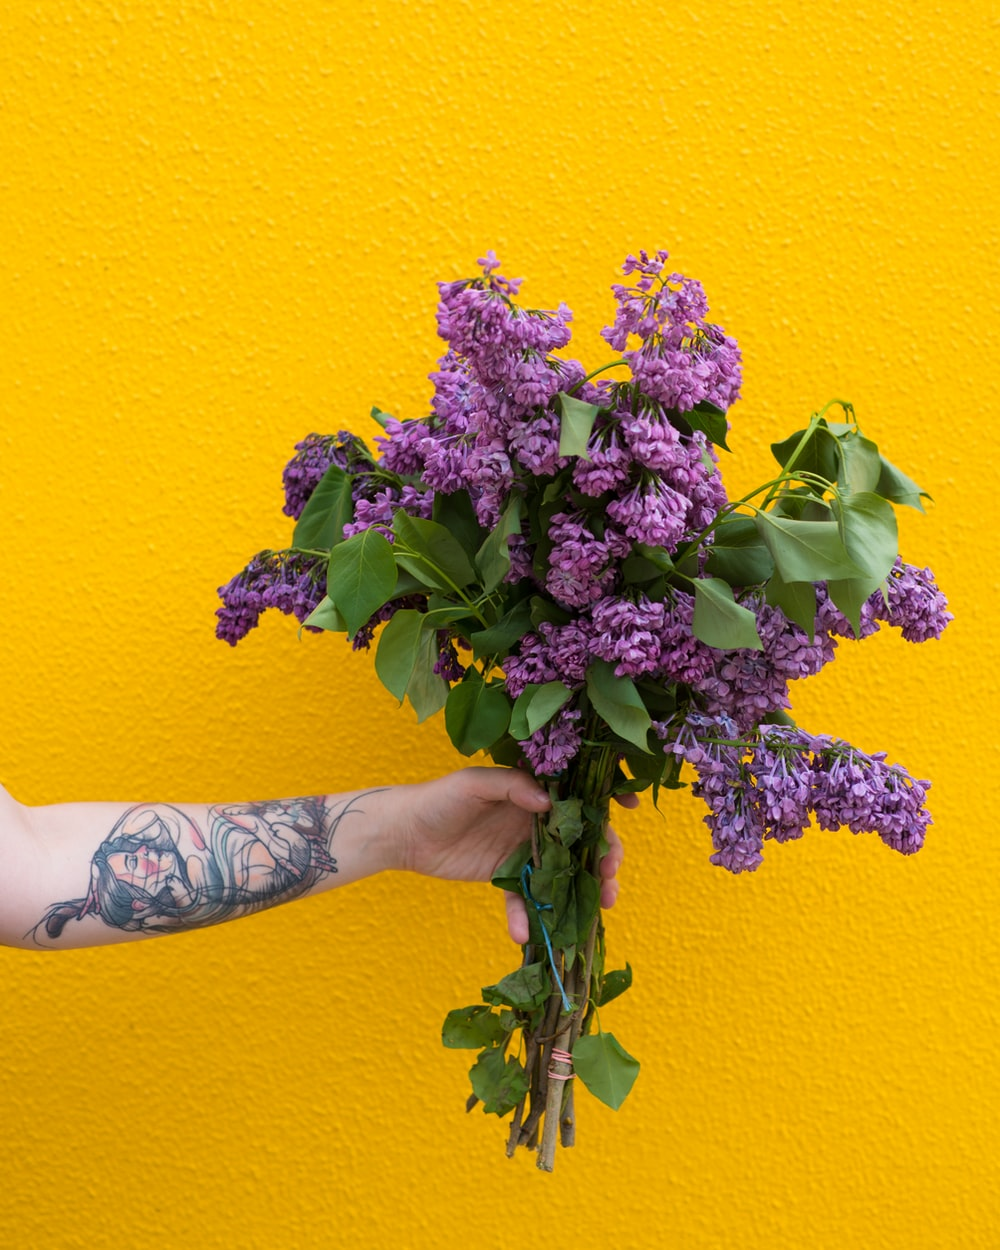 person holding bouquet of purple flowers